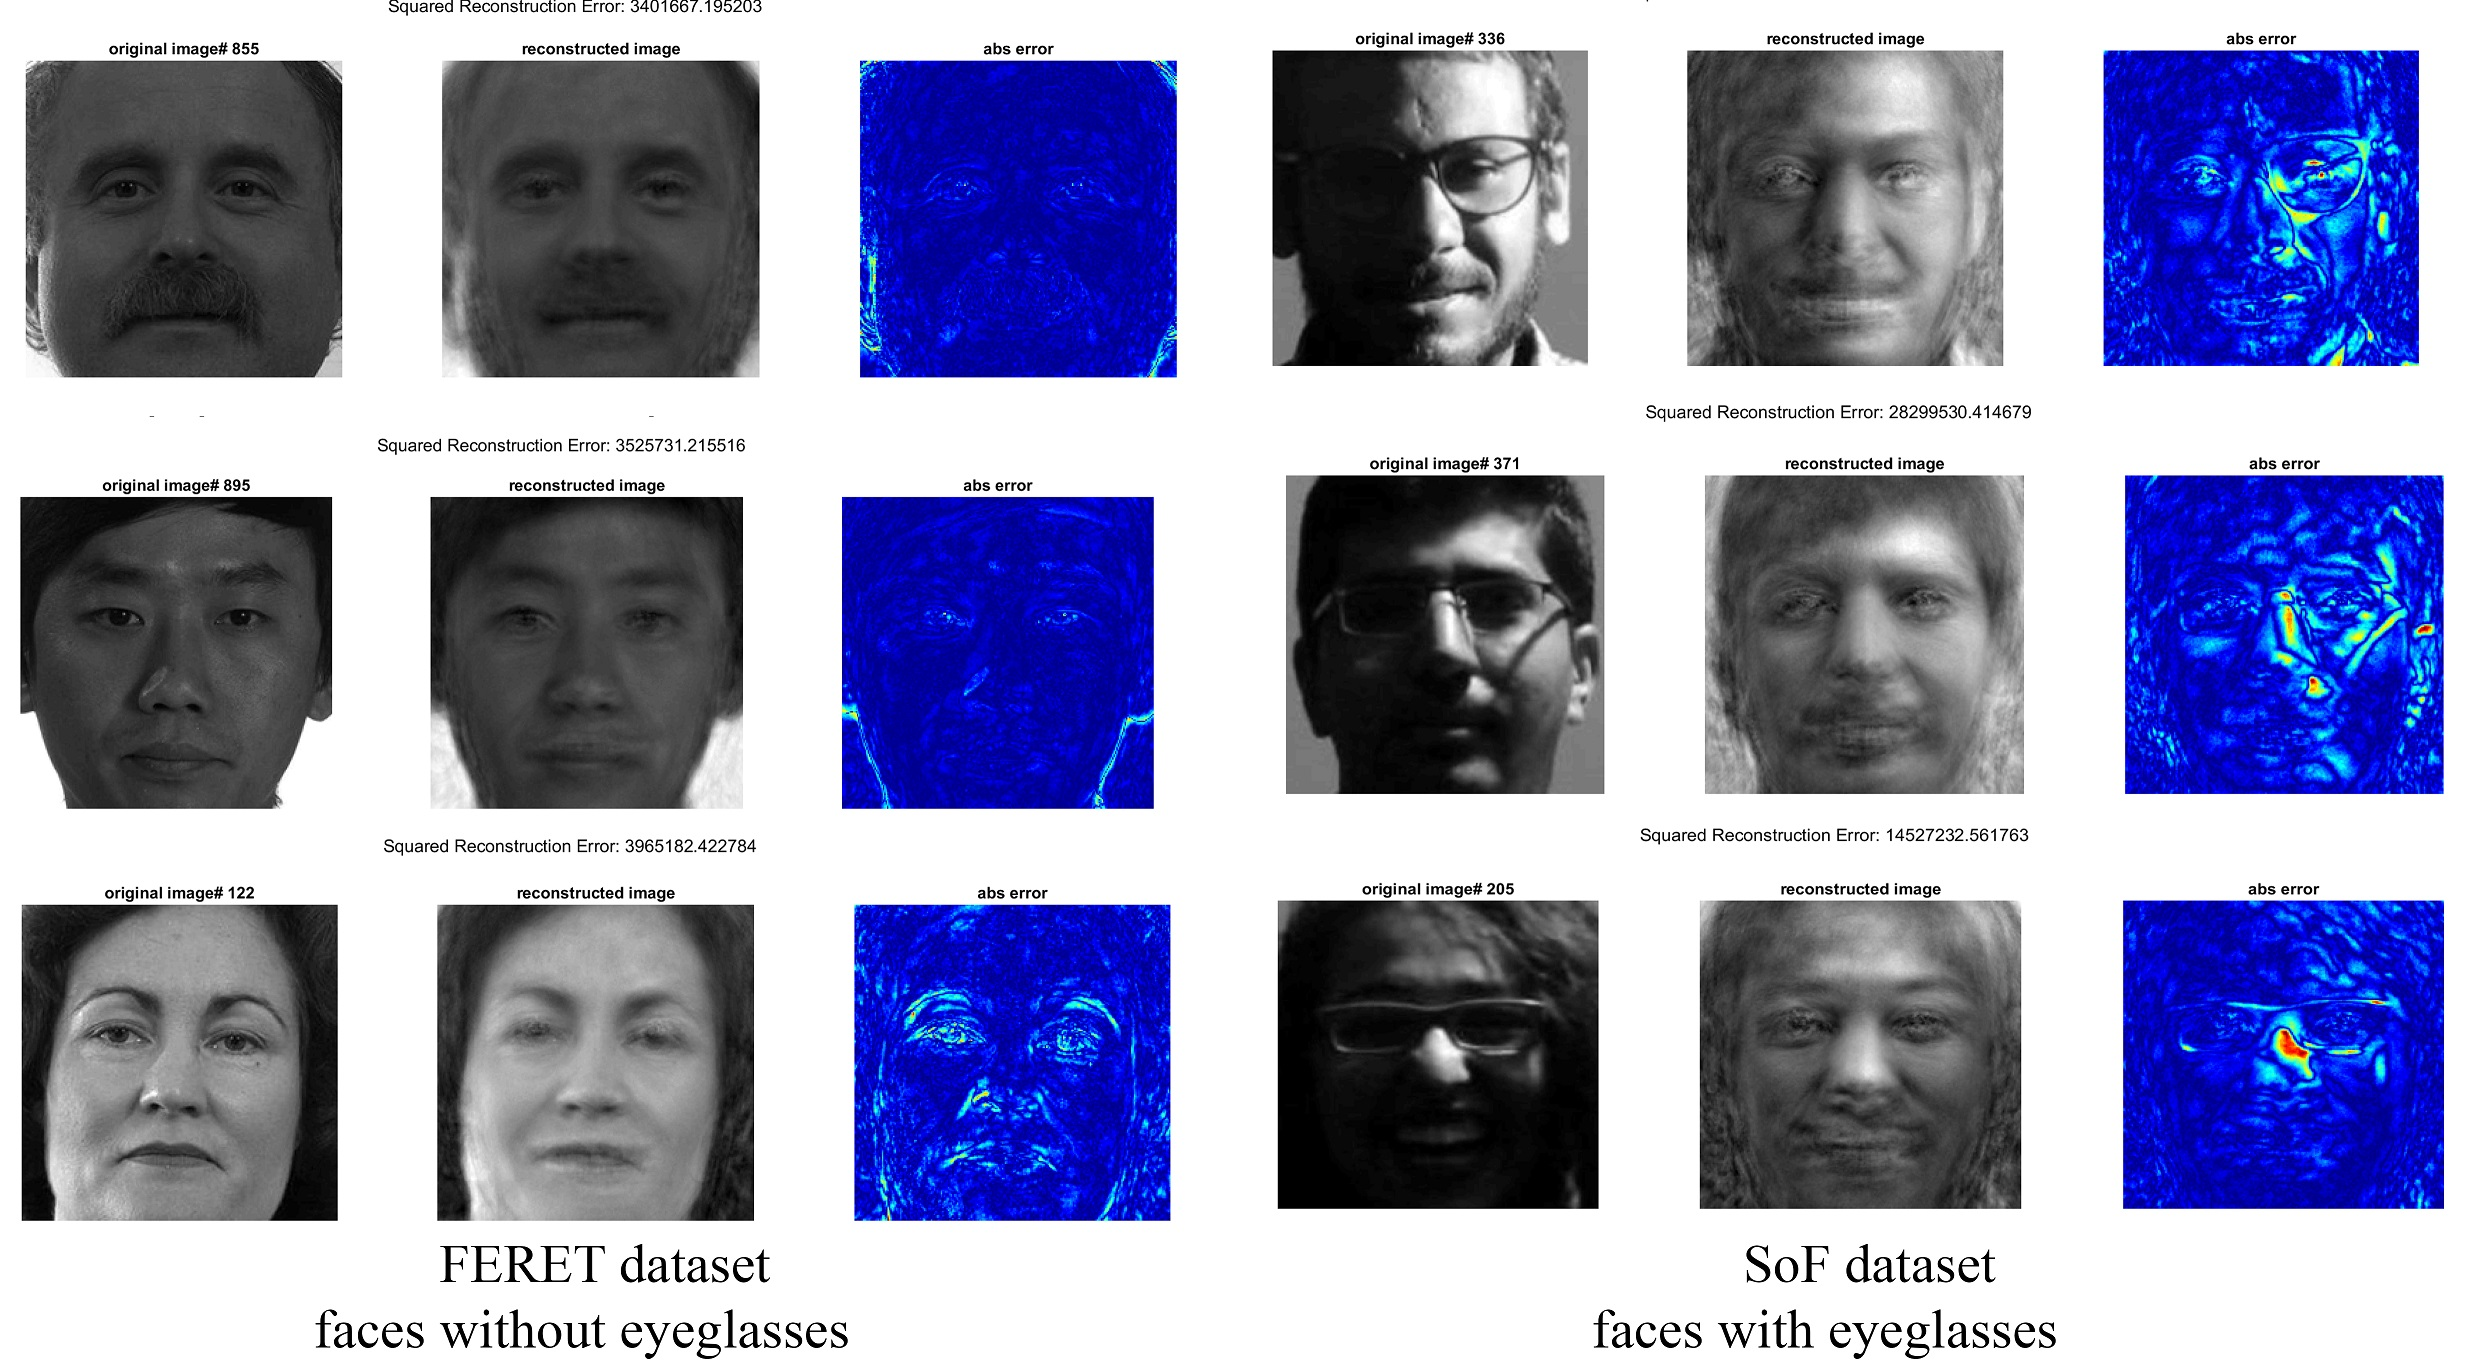 Eyeglasses detection on face images using PCA - File